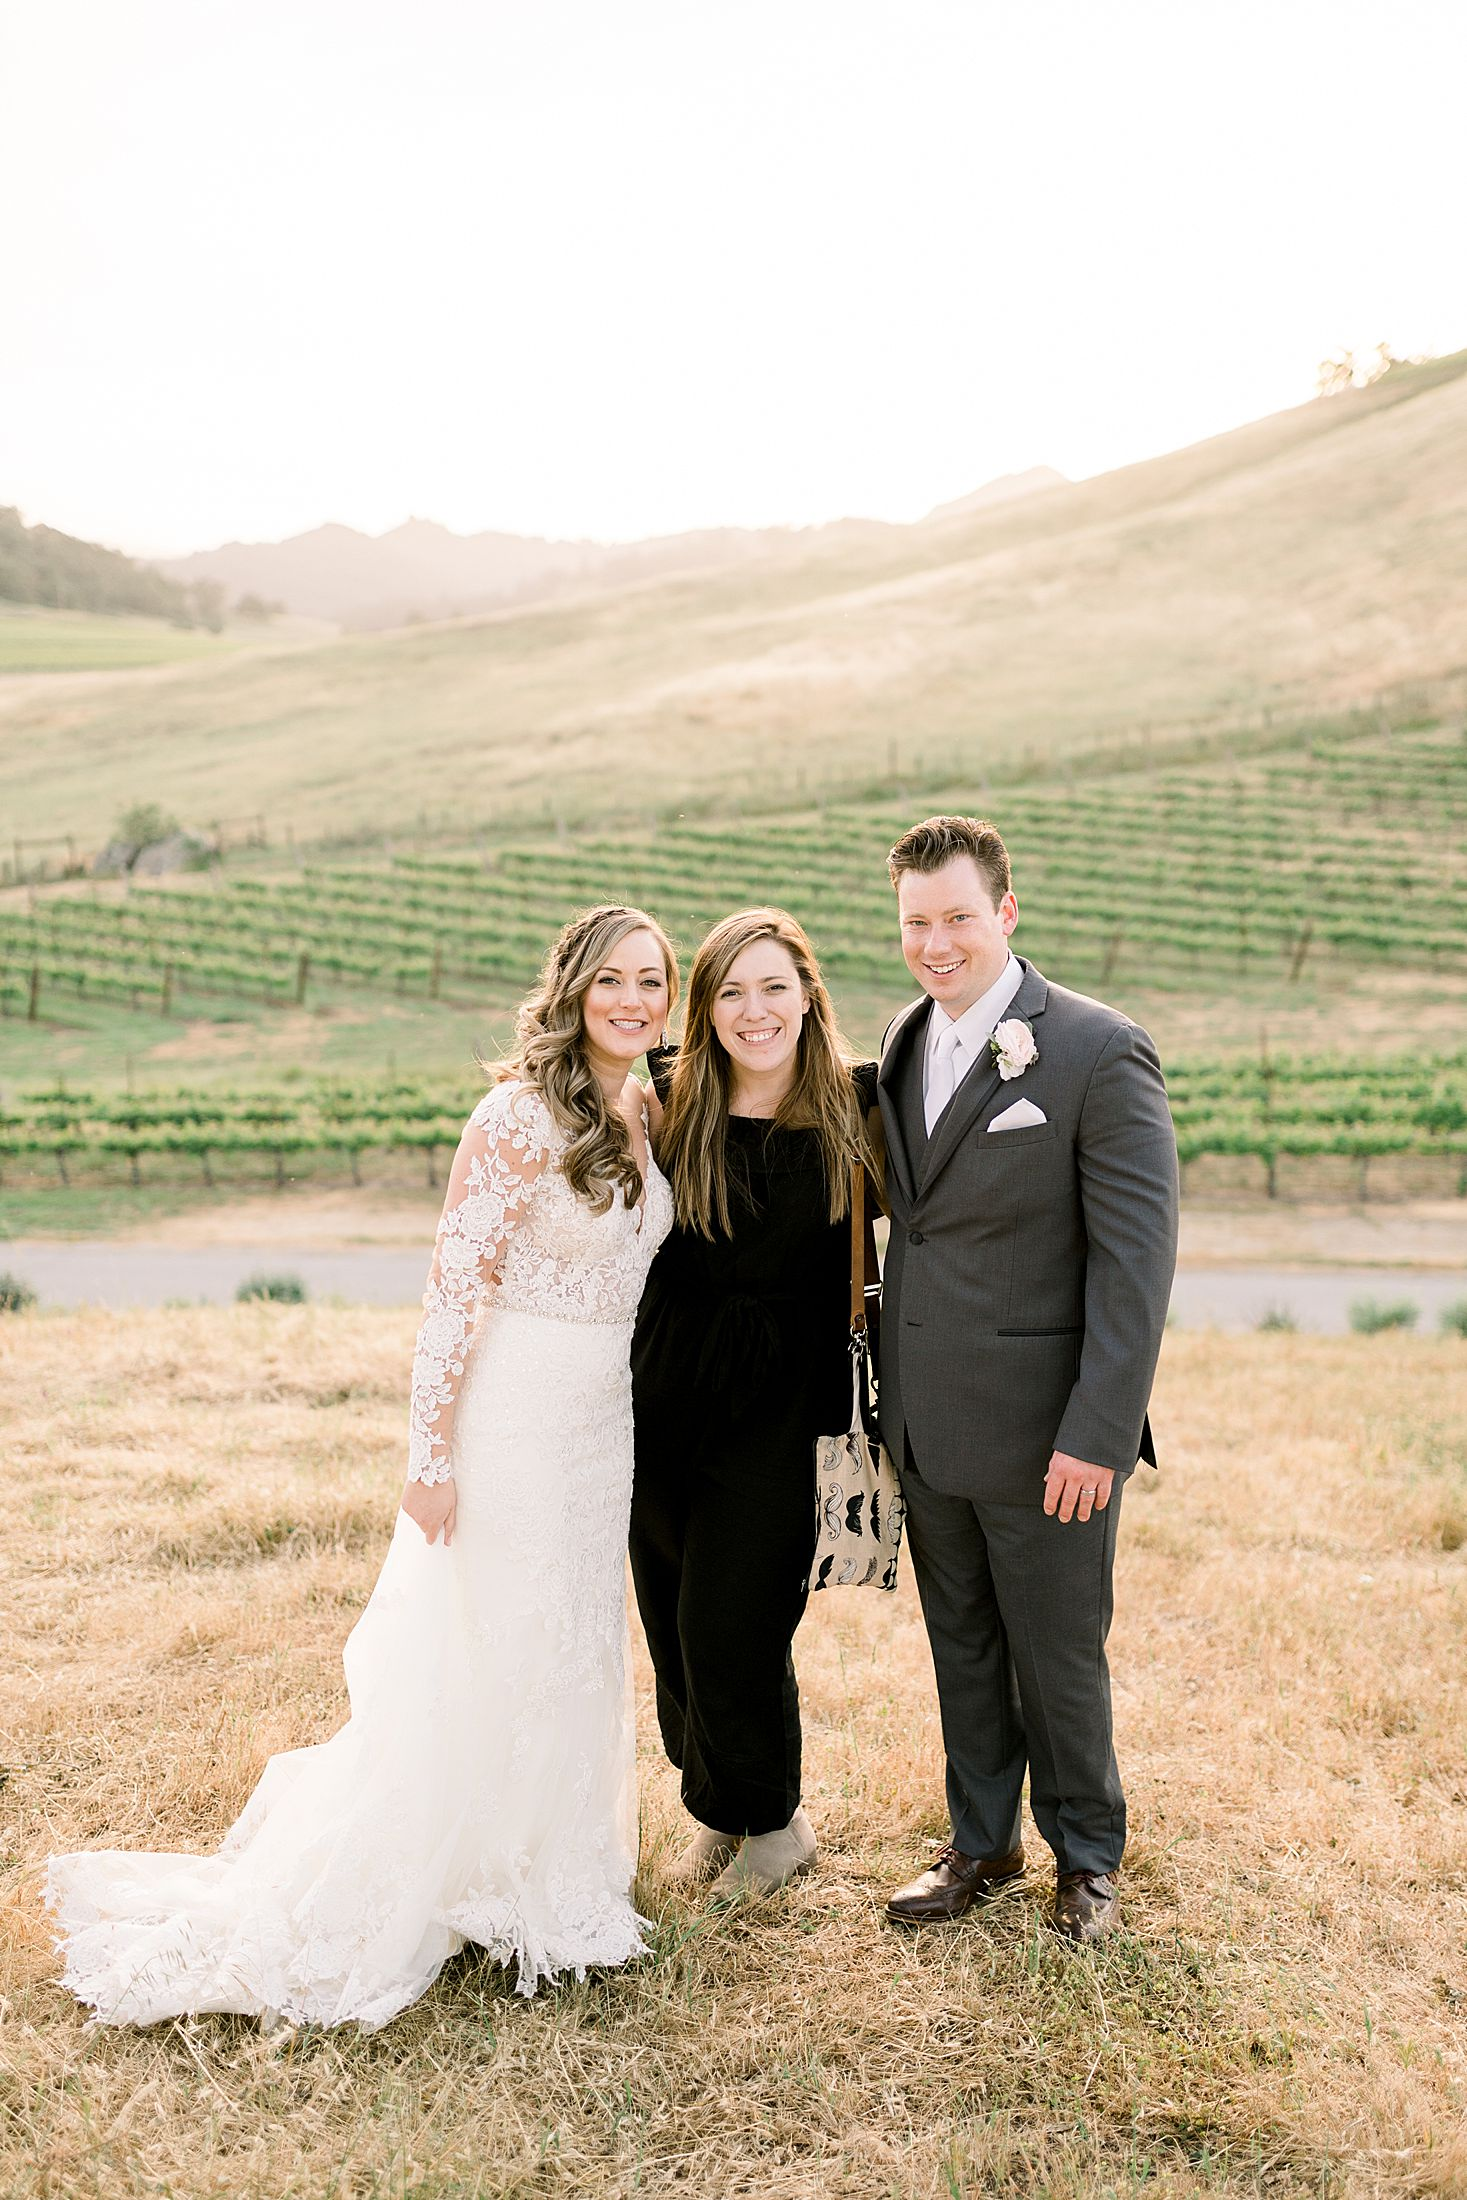 Clos LaChance Winery Wedding - Ashley Baumgartner - Kat & Kurt - Morgan Hill Wedding - Winery Wedding - Bay Area Photographer - Sacramento Wedding Photographer_0085.jpg